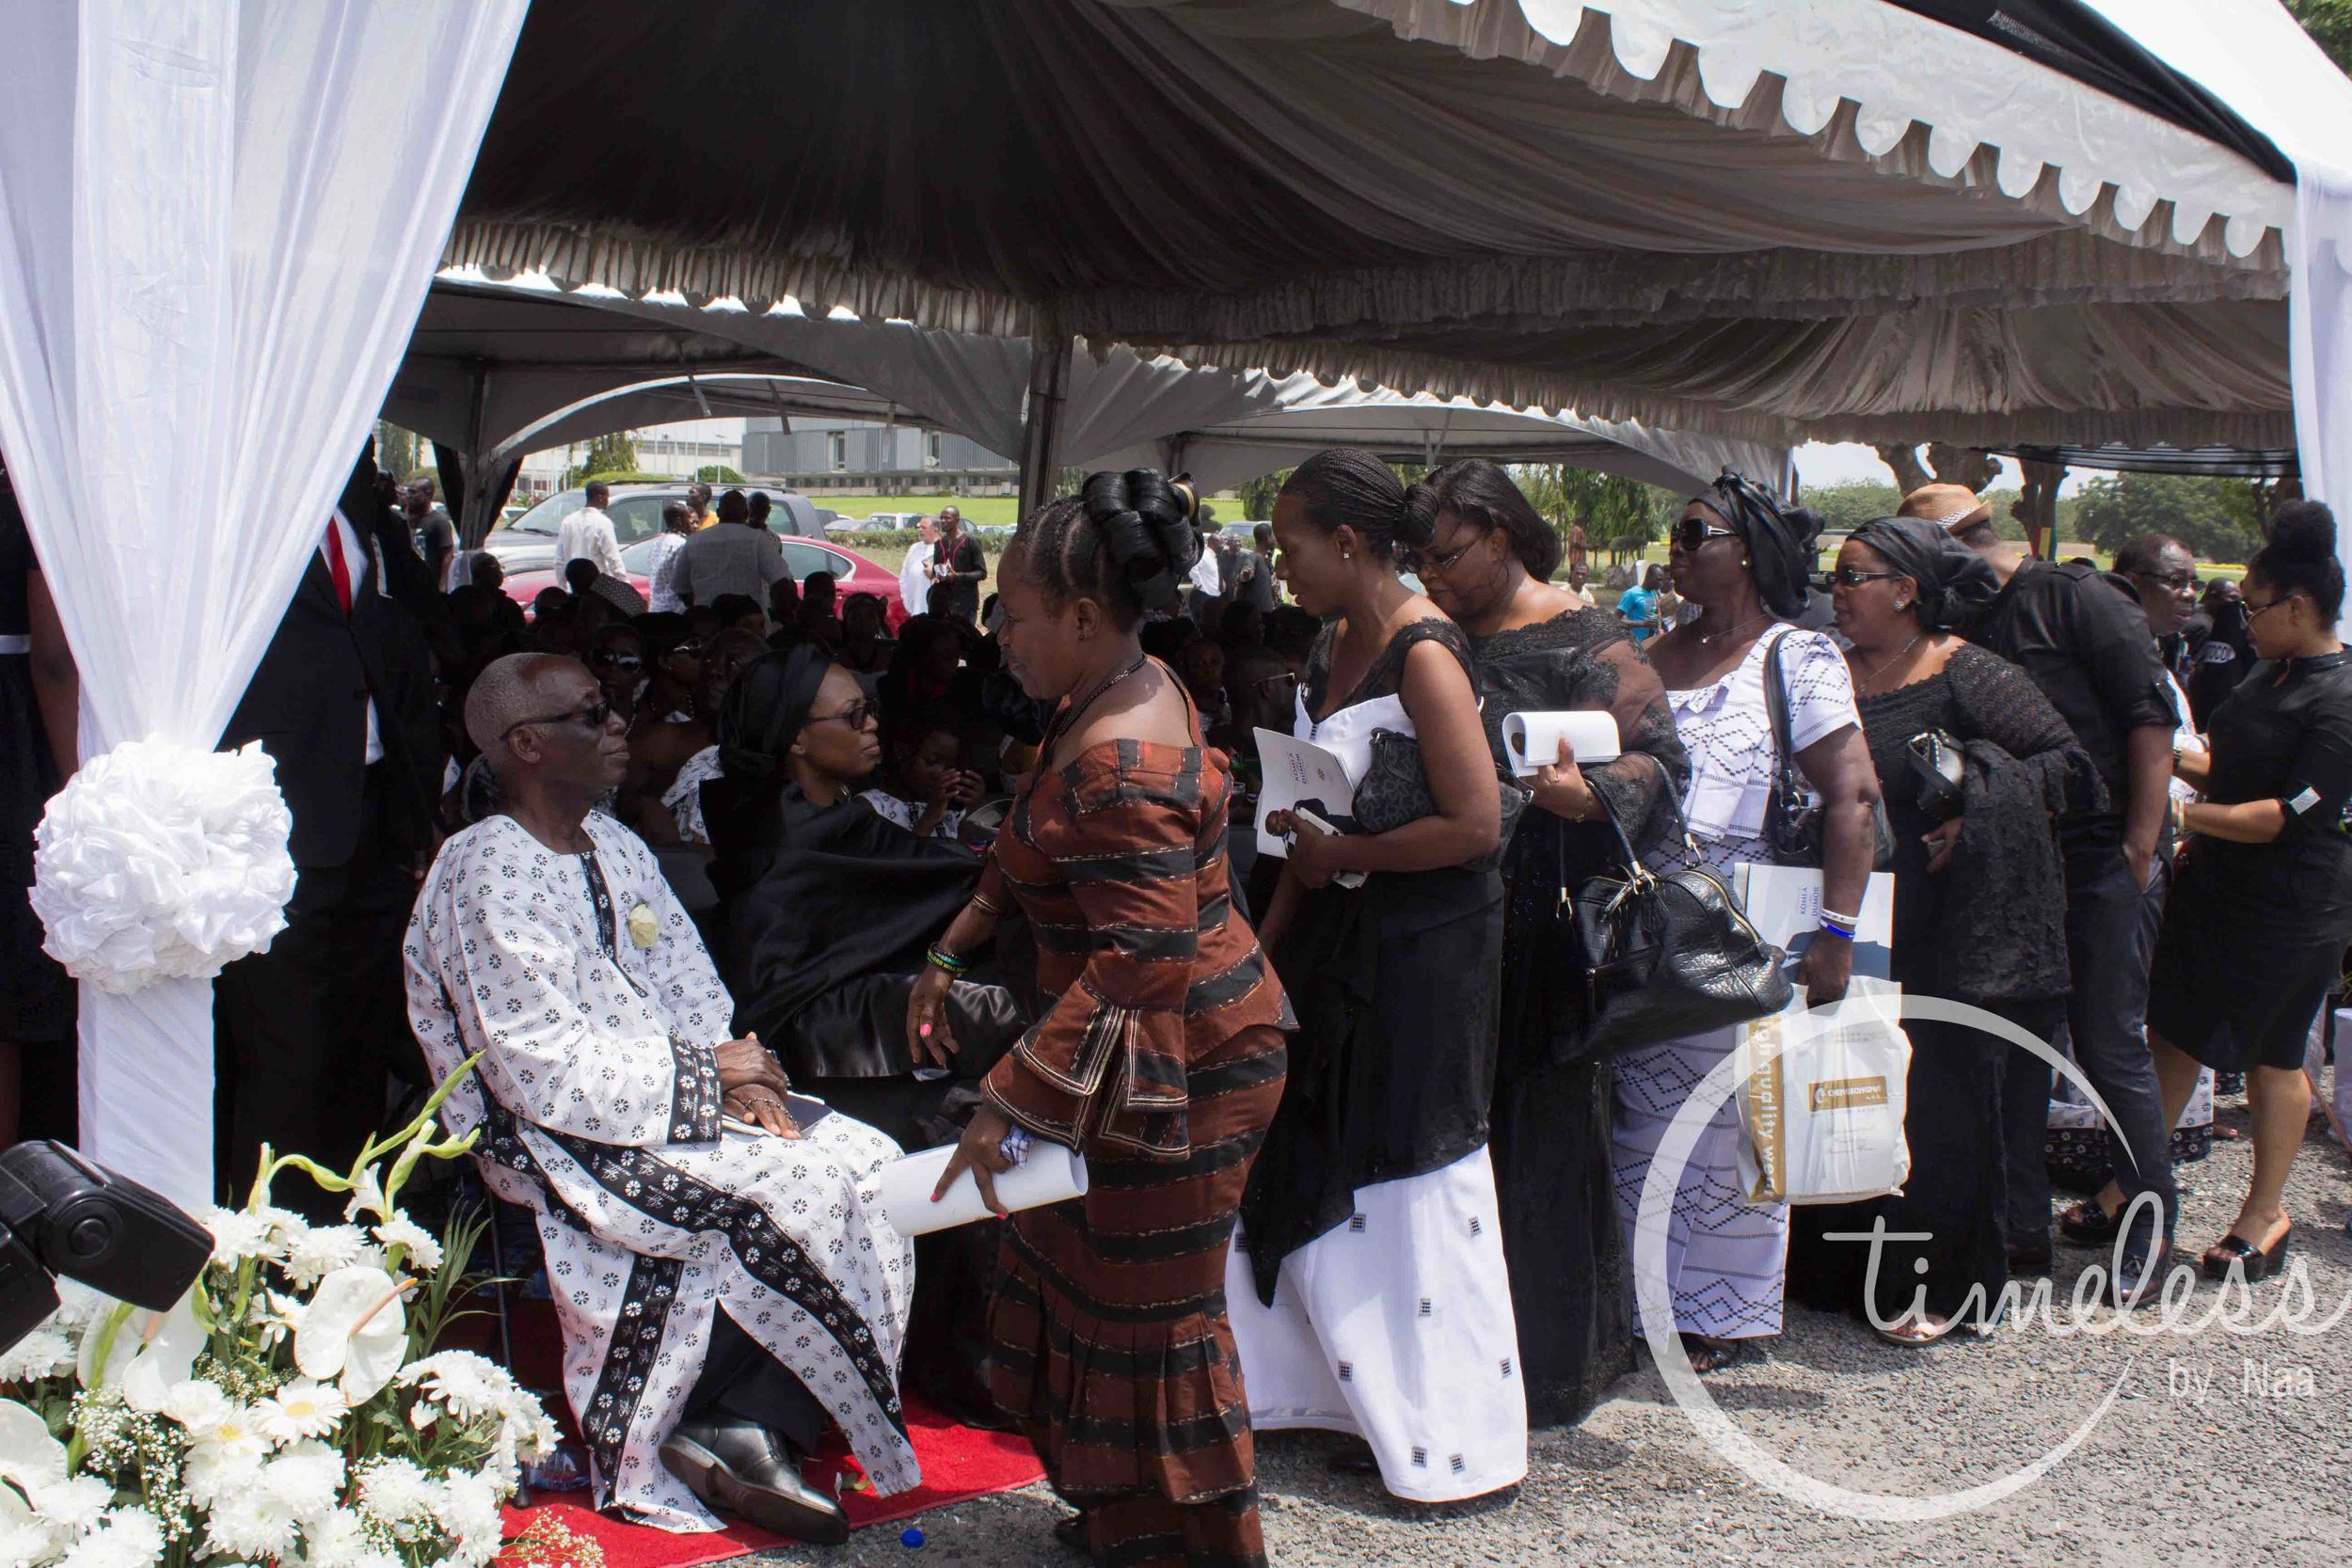 Mourners queue to pay their respects to the family.